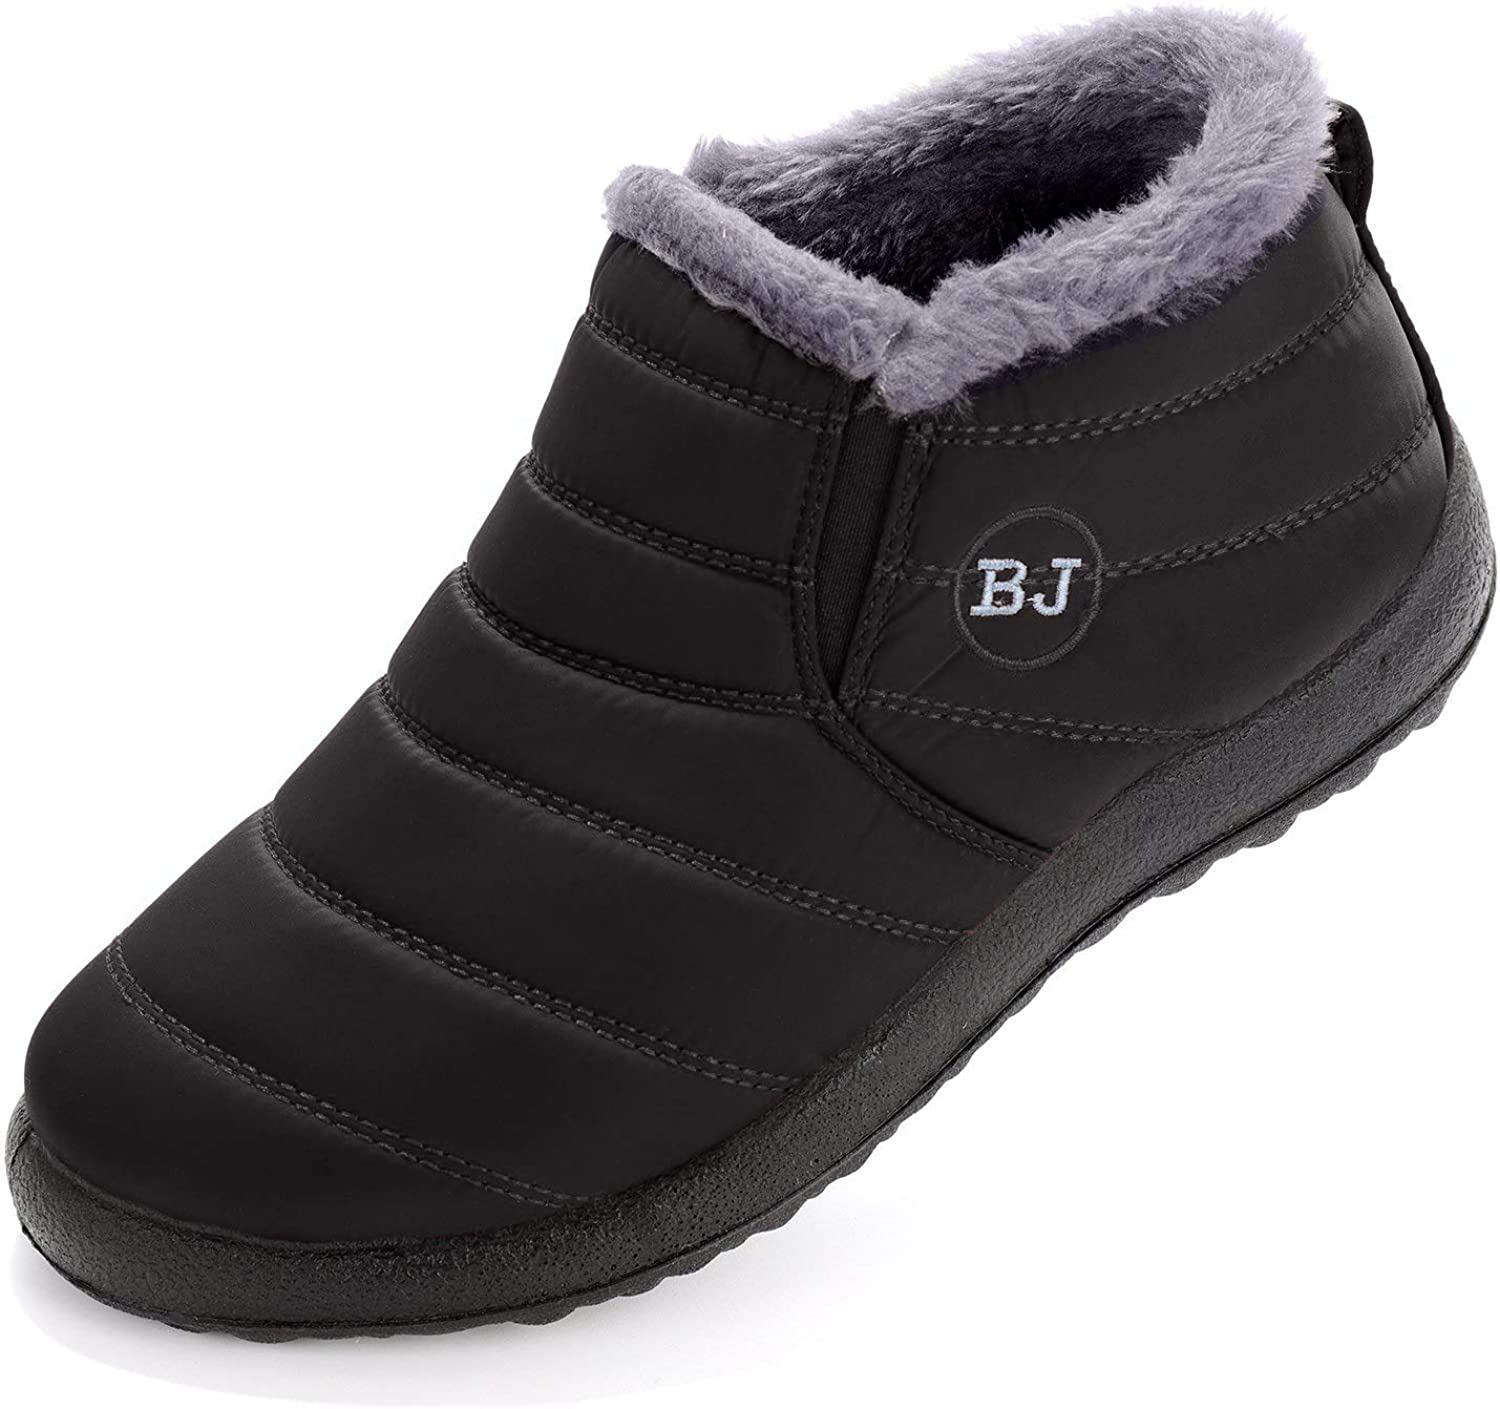 Womens Snow Boots Winter Warm Lined Anti-Slip Ankle Fur Topics on Spasm price TV Booties